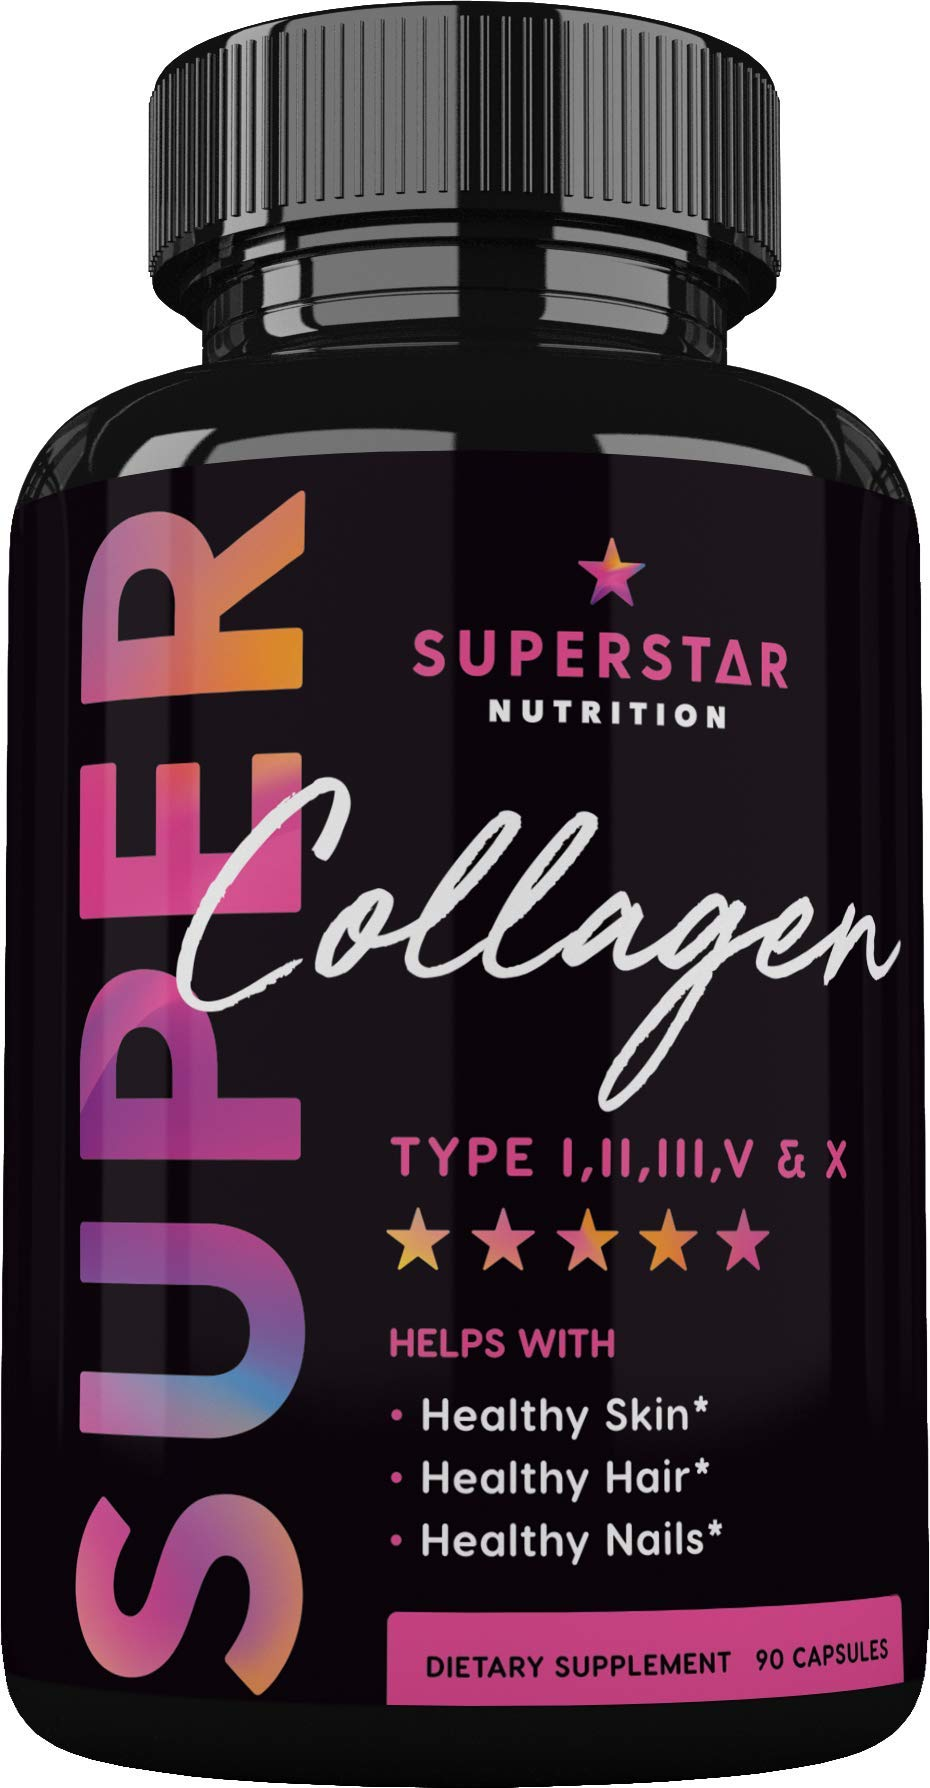 Collagen Capsules for Women (Type I, II, III, V, X) – Collagen Peptides Pills for Healthy Hair, Skin, Nails, Anti-Aging and Bones - Collageno Capsules for Women - 90 Multi Collagen Supplements 1500mg